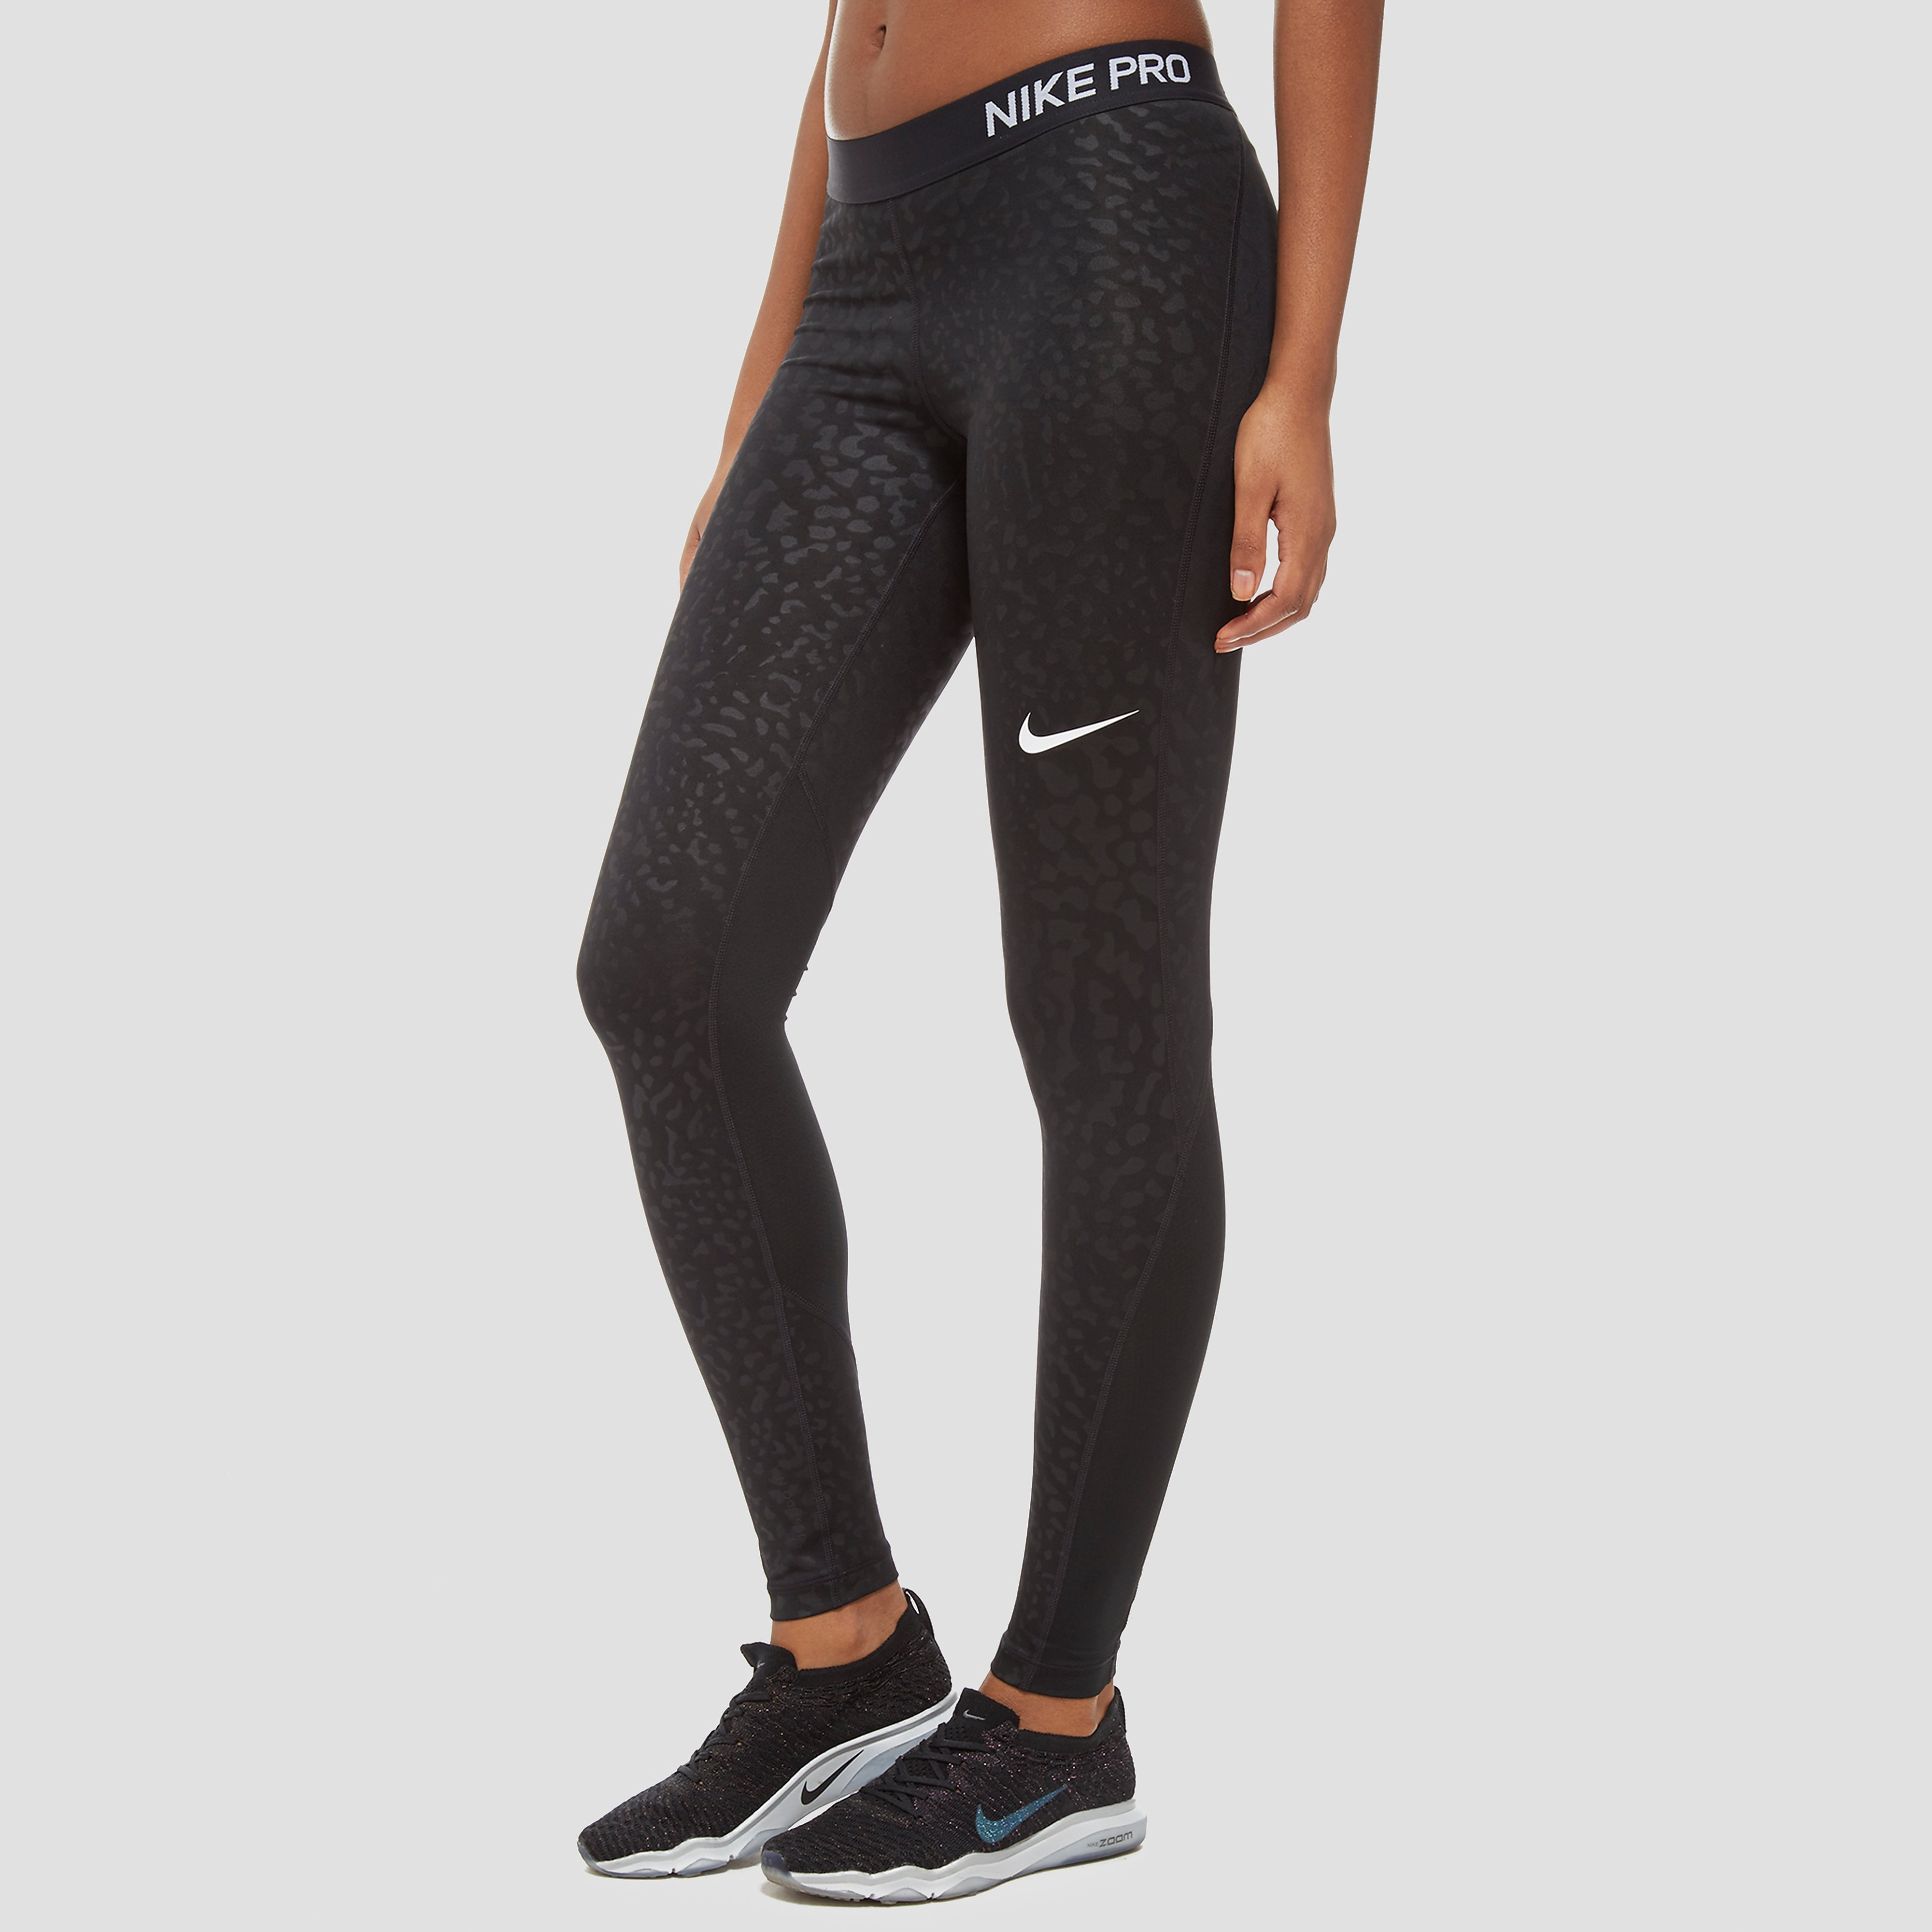 Nike Women's Pro Training Spotted Tights